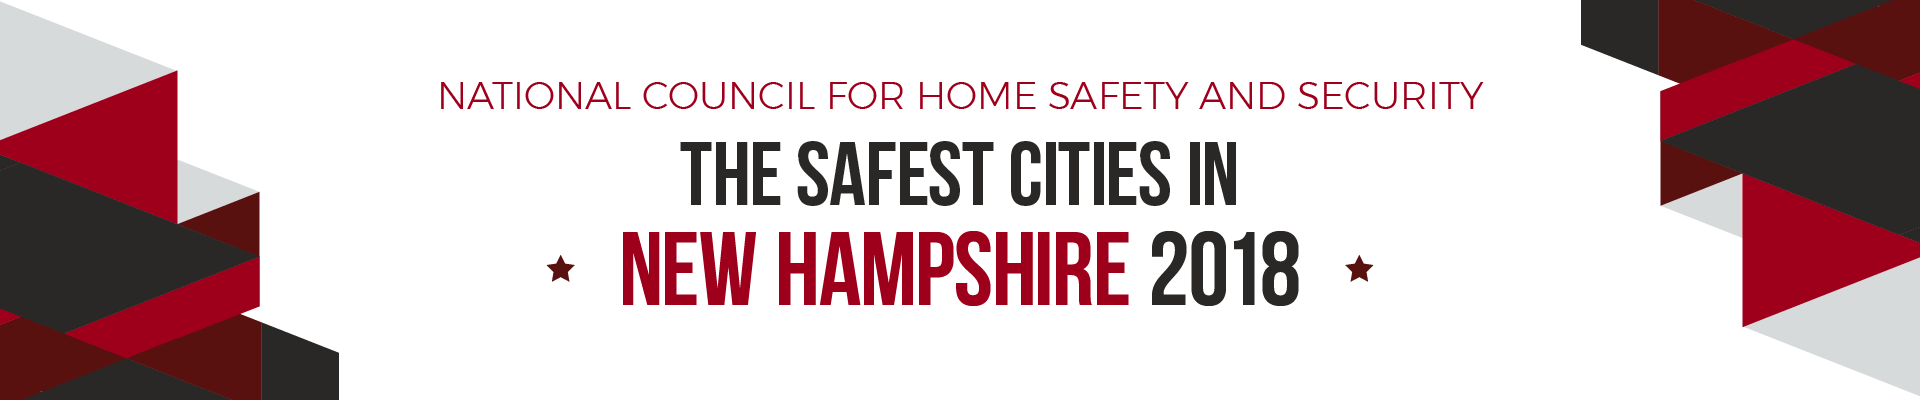 safe cities new hampshire 2018